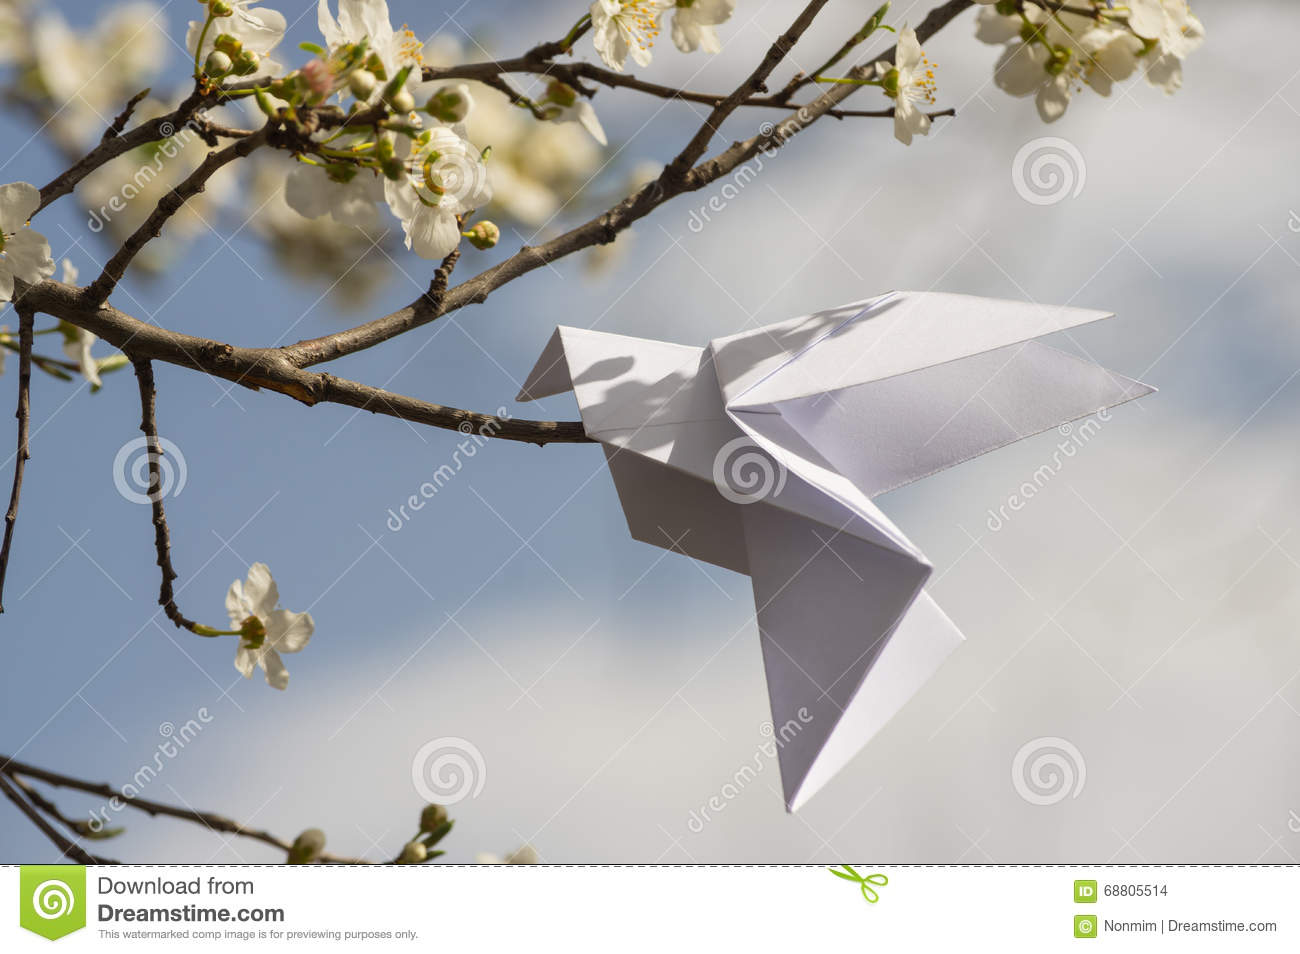 Origami Dove On Blooming Spring Tree Stock Photo - Image ... - photo#39